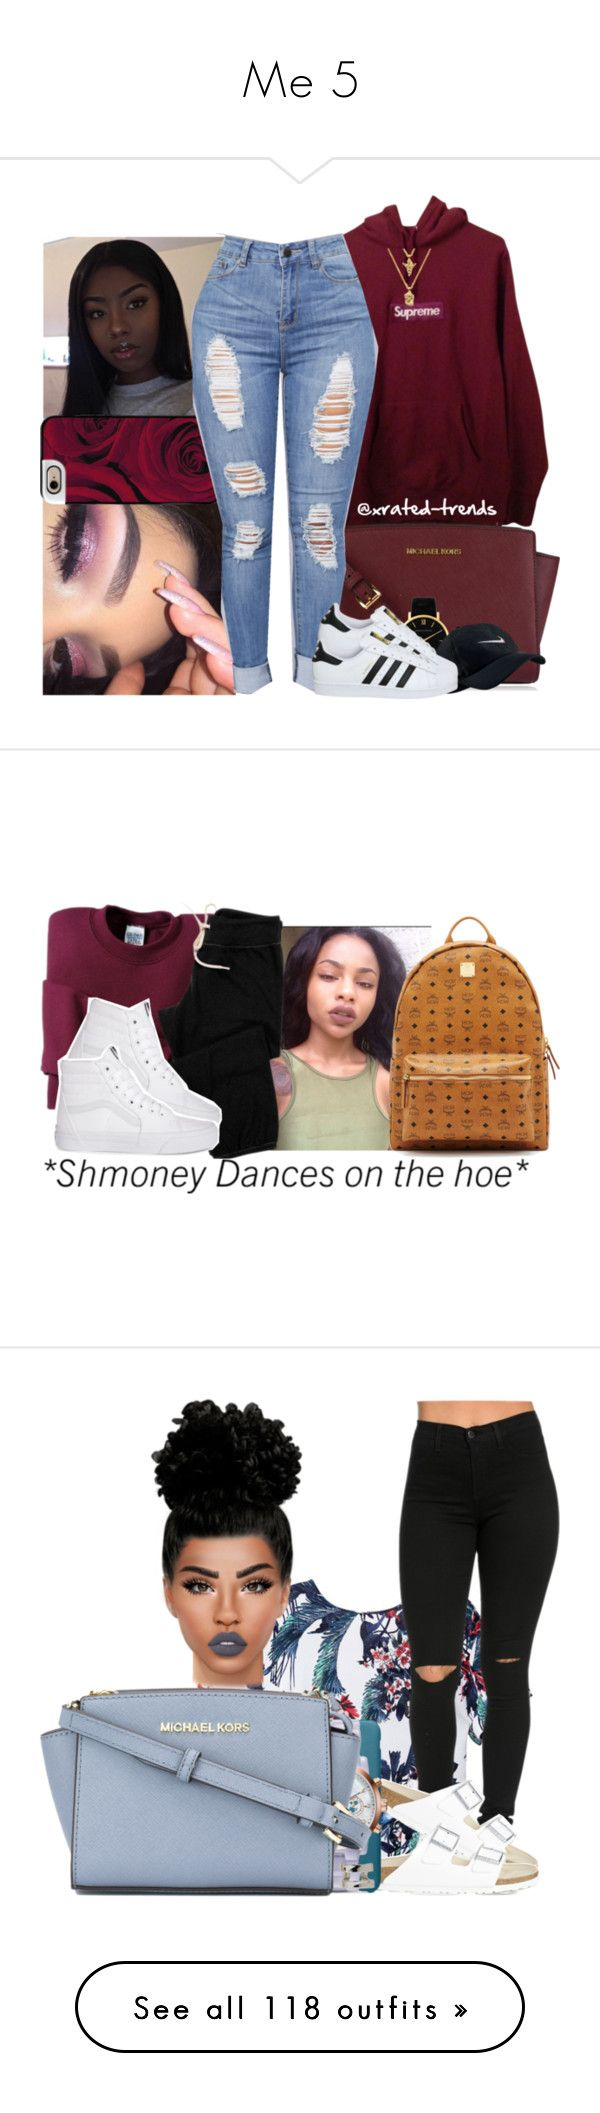 """""""Me 5"""" by mzlowkey ❤ liked on Polyvore featuring Supreme, MICHAEL Michael Kors, The Gold Gods, Casetify, Larsson & Jennings, NIKE, adidas, Gildan, Monrow and MCM"""